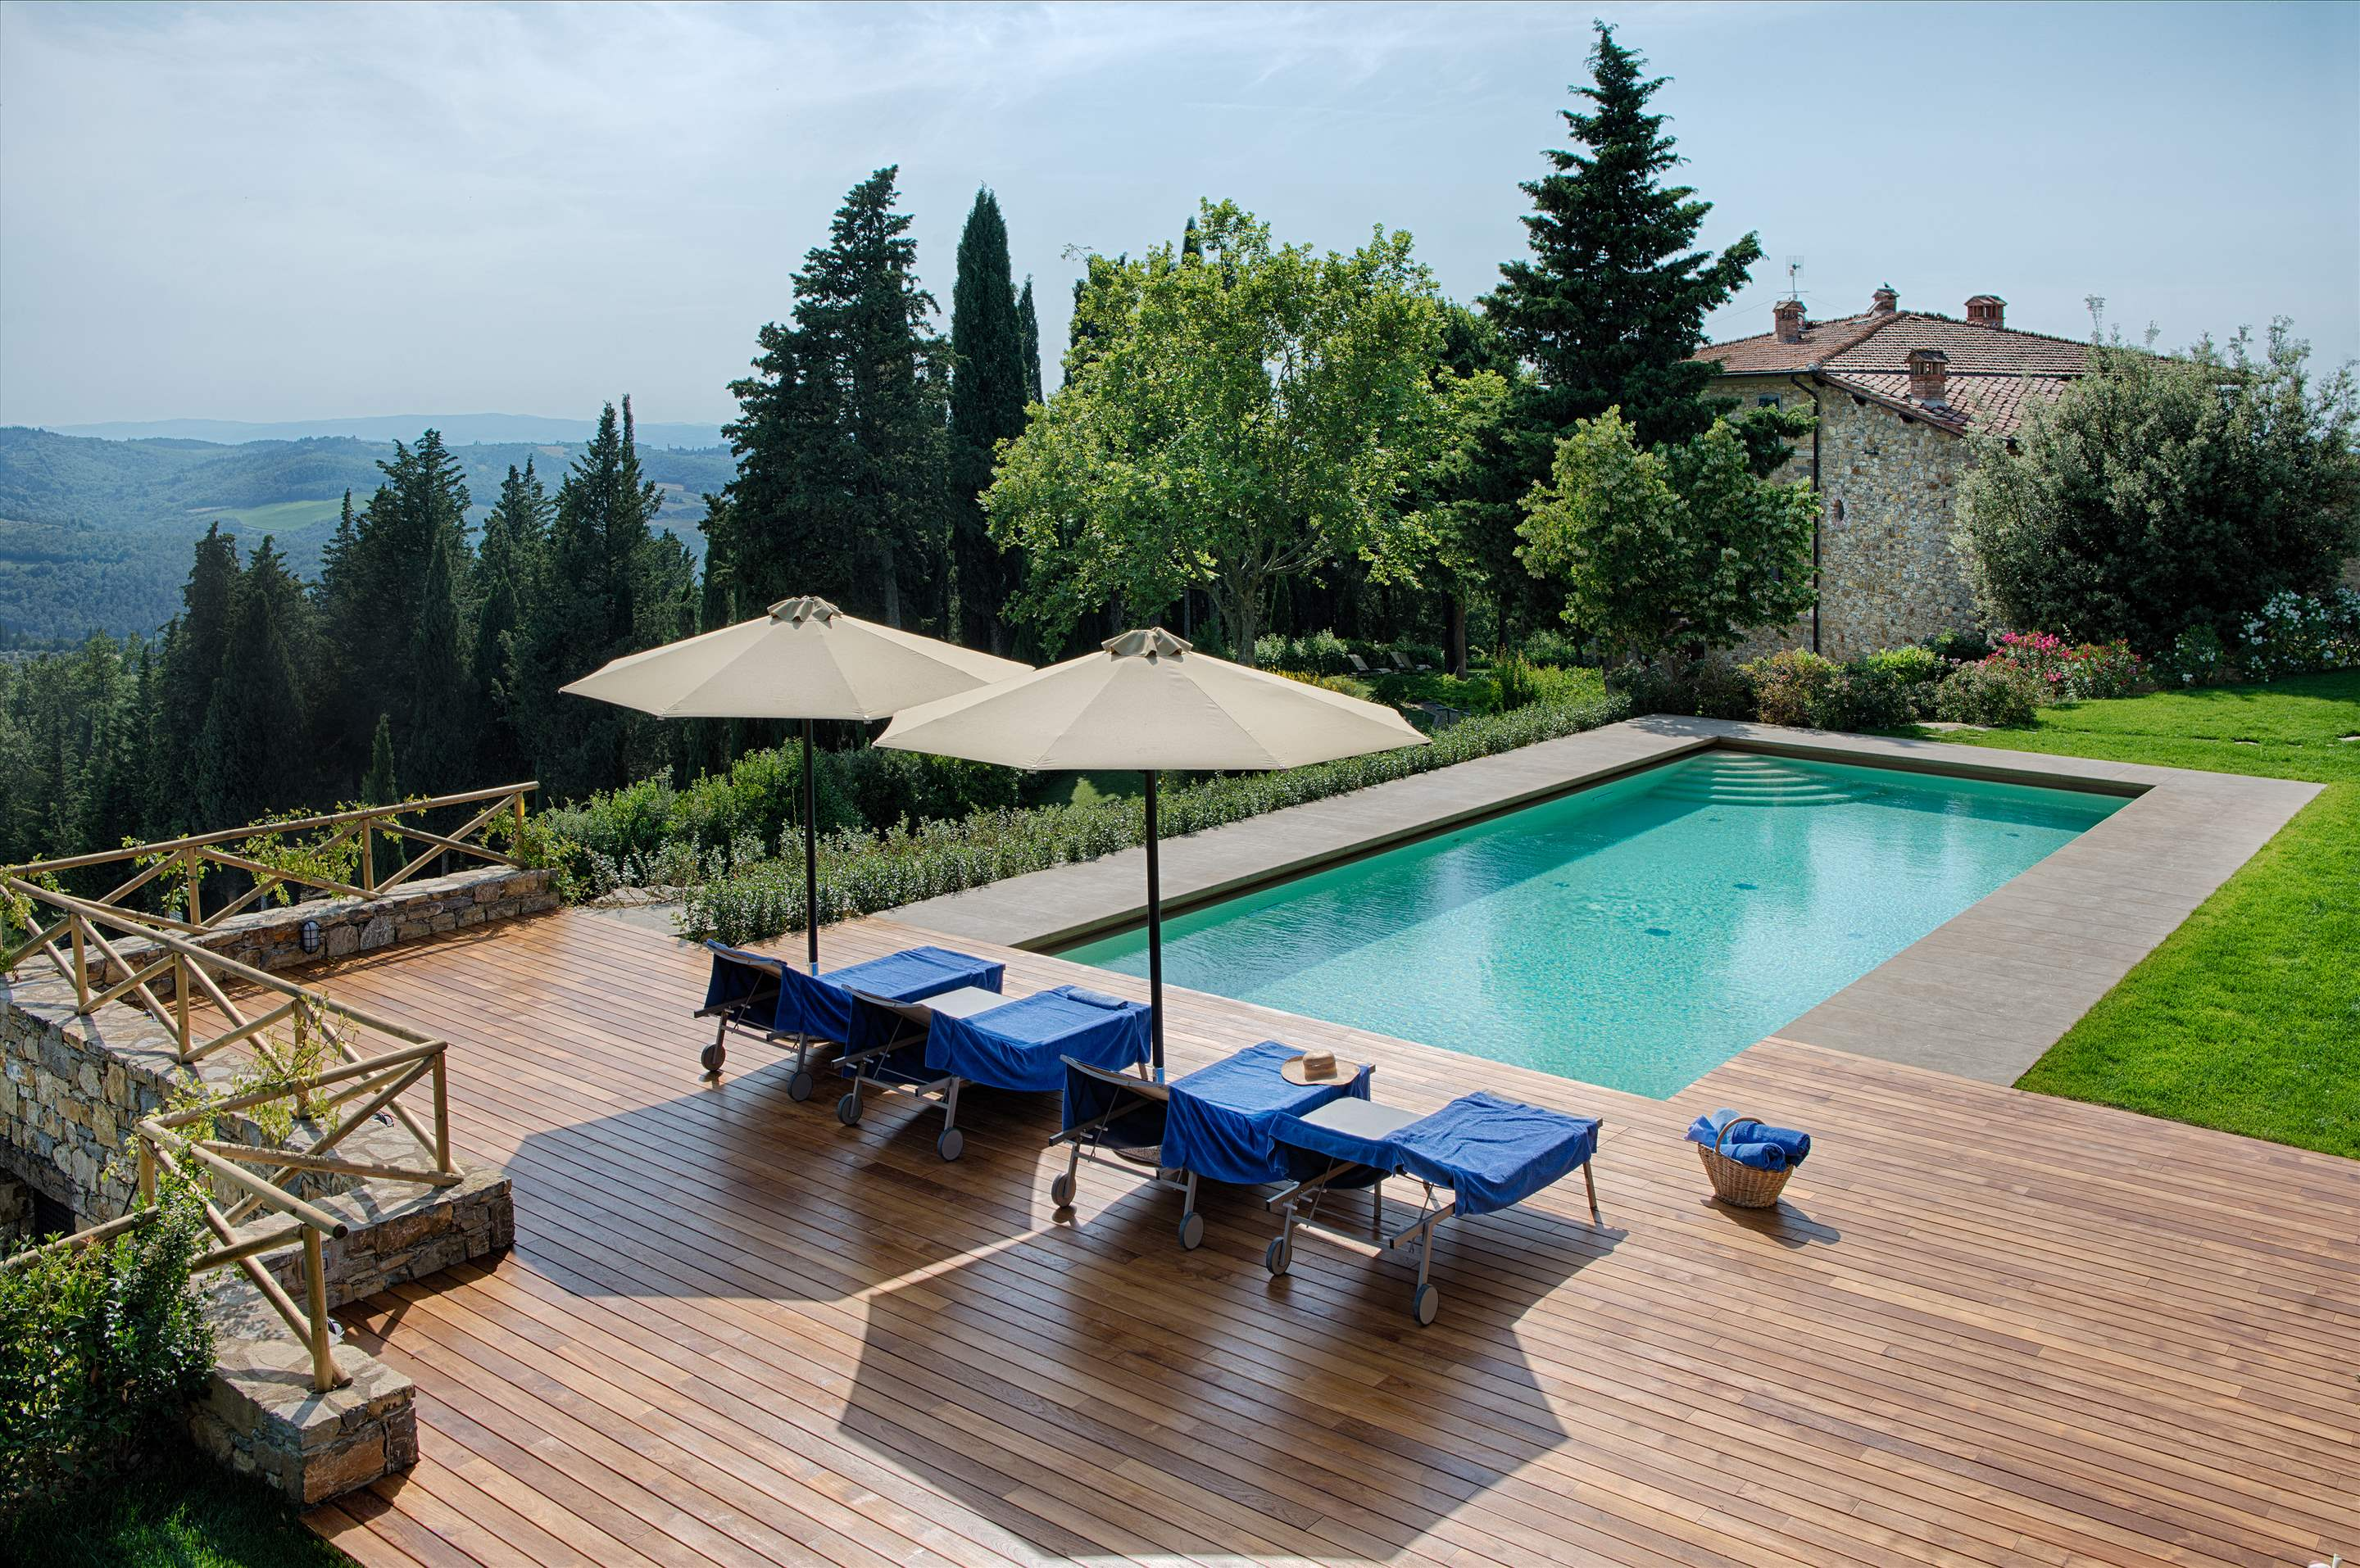 Villa La Valetta, 1 Bed Apt Uva, 1 bedroom villa in Chianti & Countryside, Tuscany